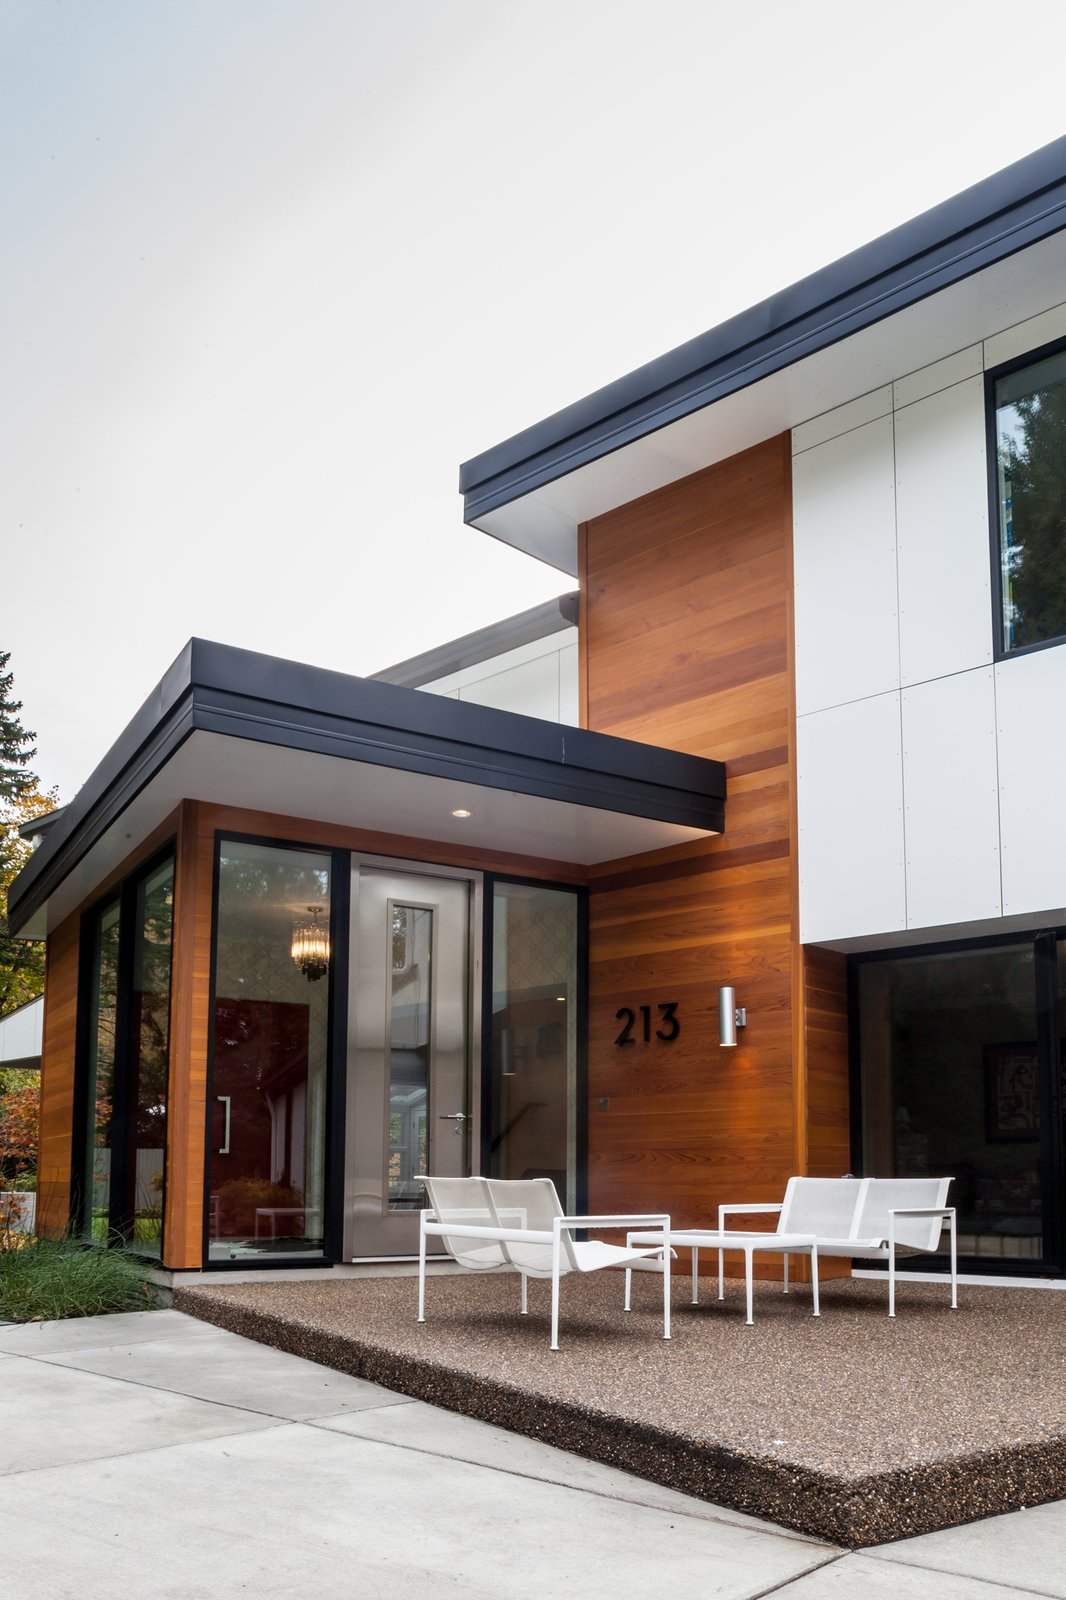 While maintaining the existing house structure, an entirely new, modern home was created from new interiors placed on to a new exterior skin. The entire exterior was revised with new cladding, metal roof, insulation, and windows. An addition opened the space to embrace higher ceilings and to introduce varying floor levels in order to create a fresh, dynamic flow within the home. The re-cladding of the house allowed for a complete change in the home's style while also completing significant thermal improvements.  Creek Drive Residence by mossArchitects